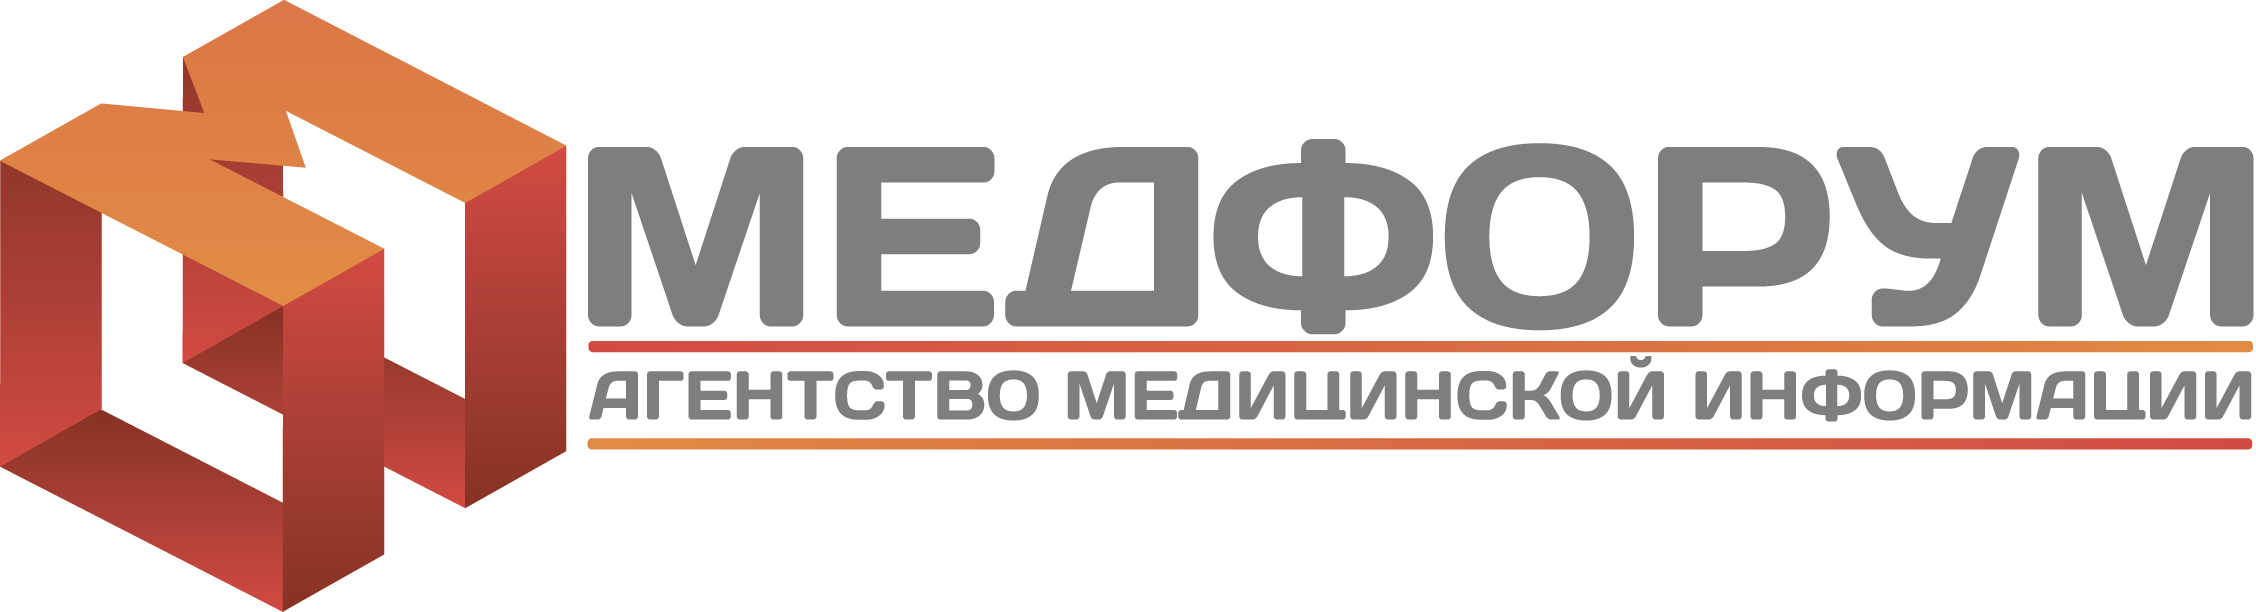 logo_medforum_19.12